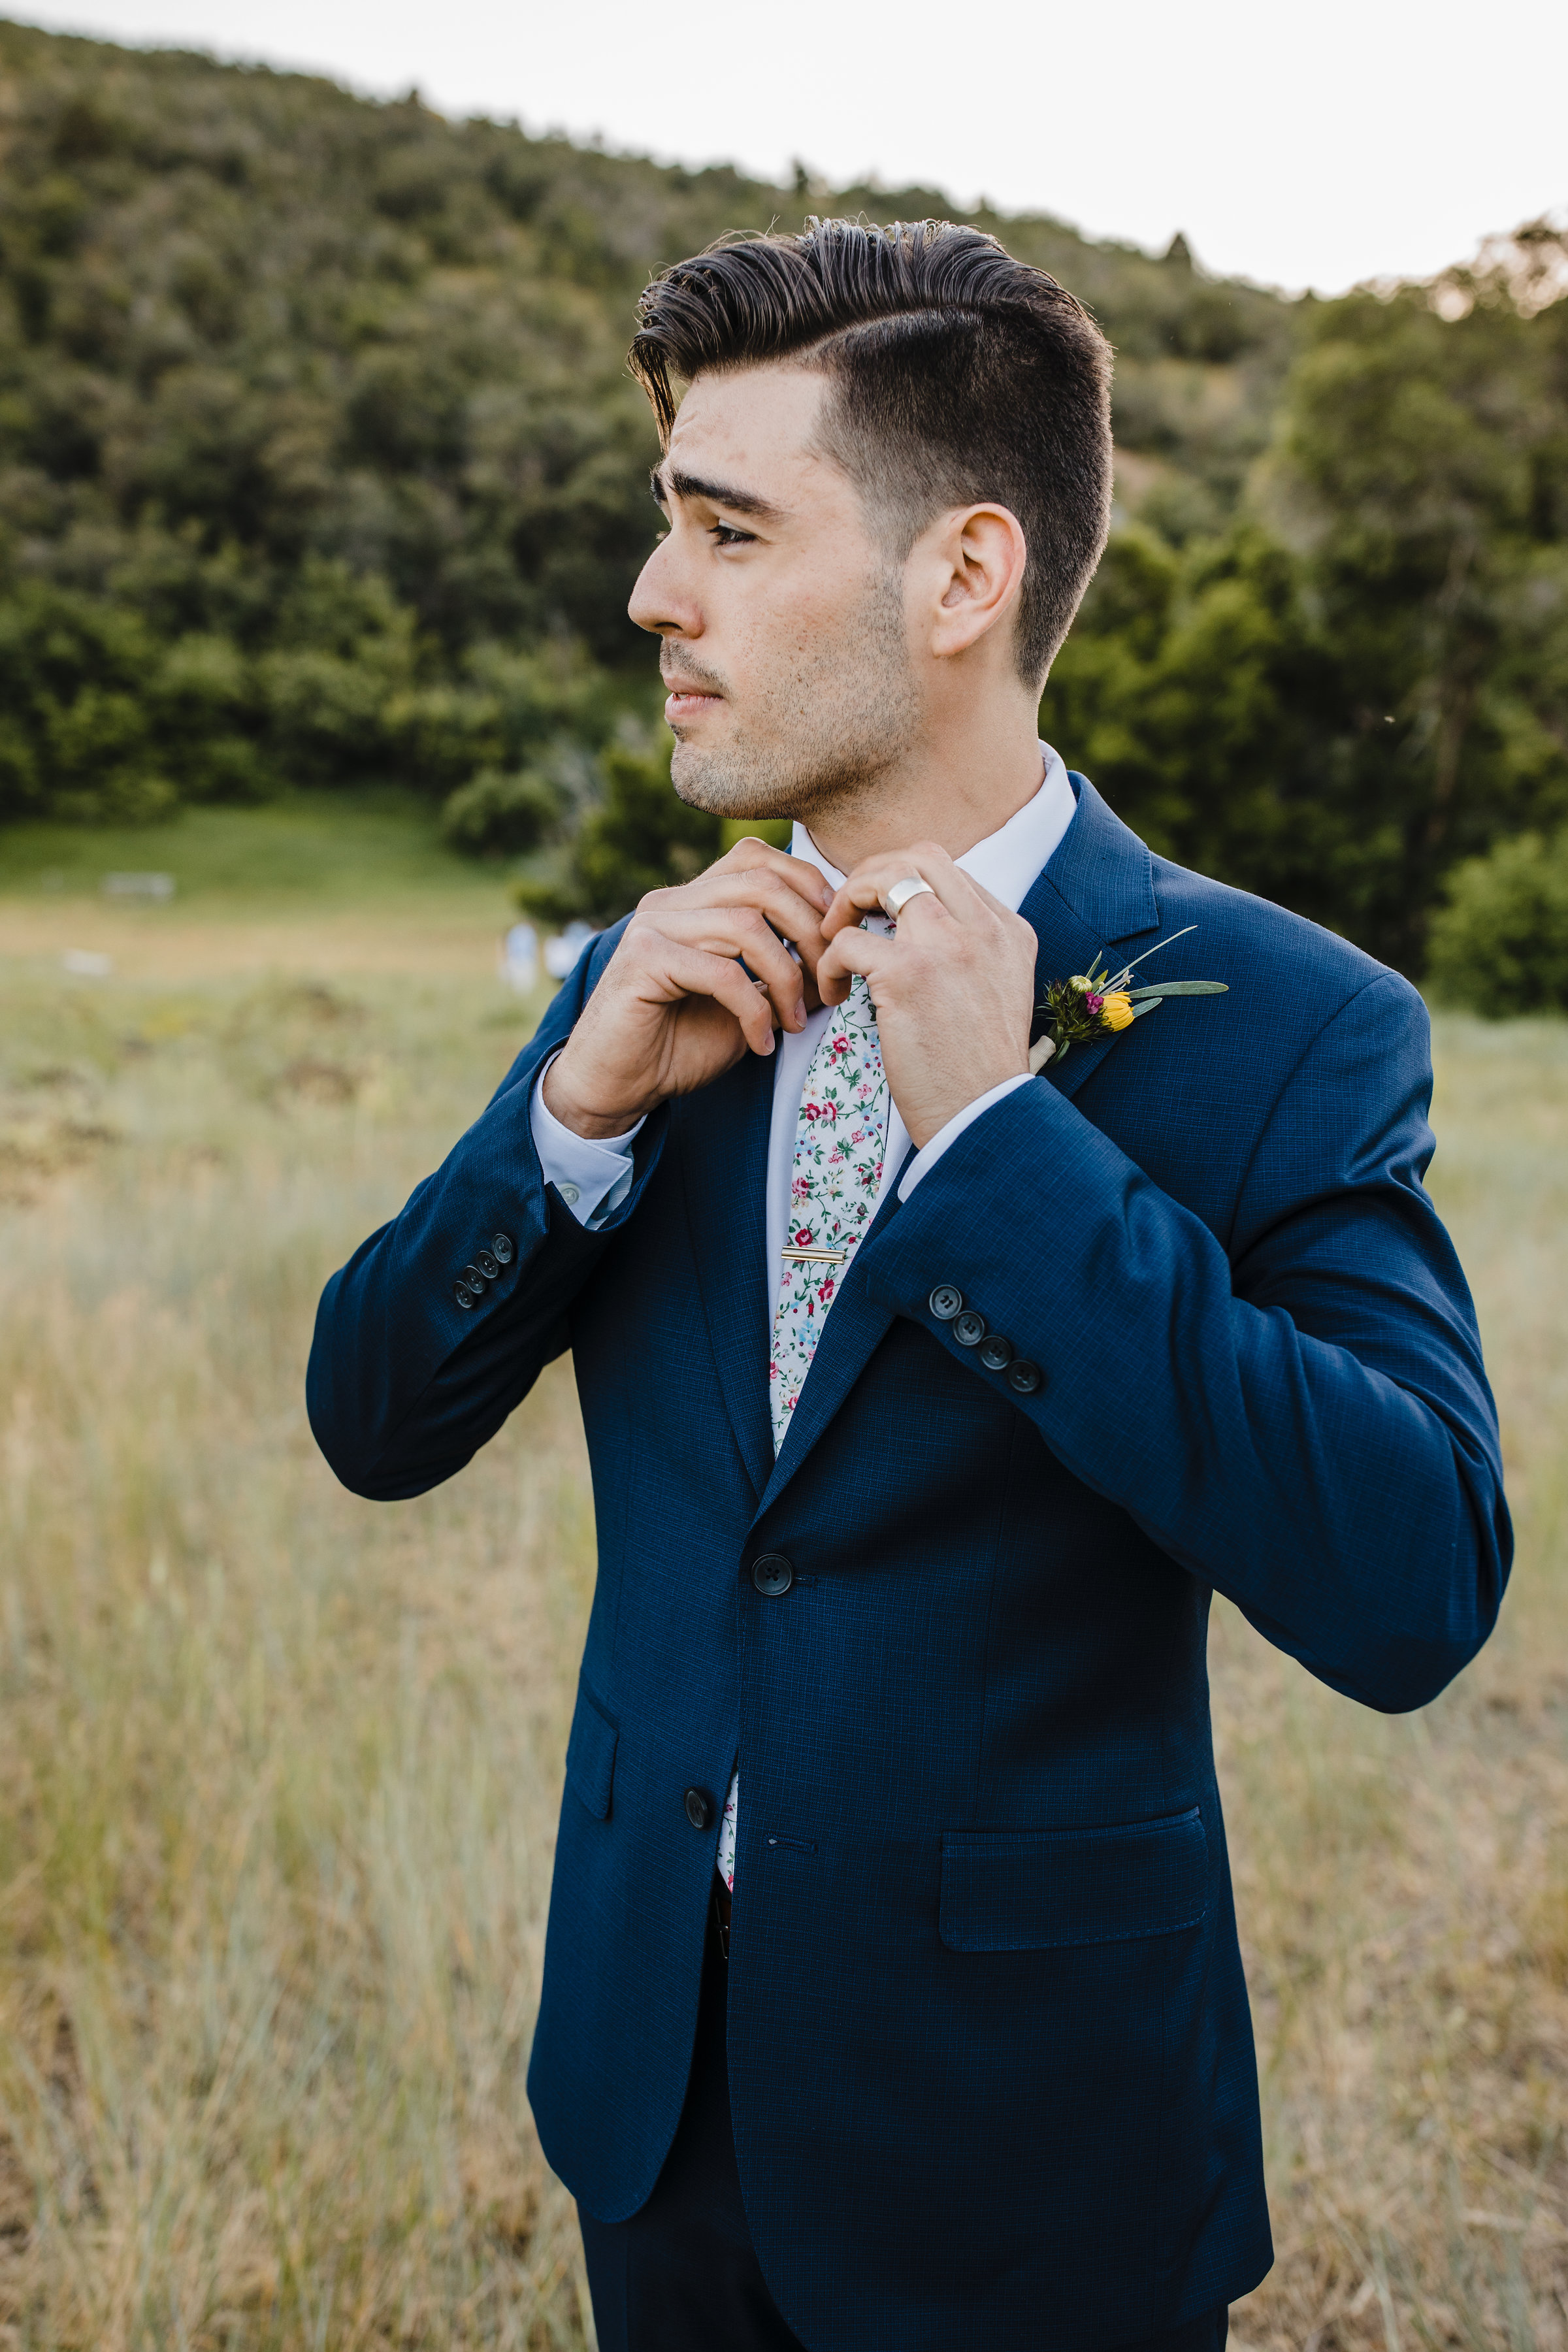 professional wedding photographer in cache valley utah floral tie groom mountain formals